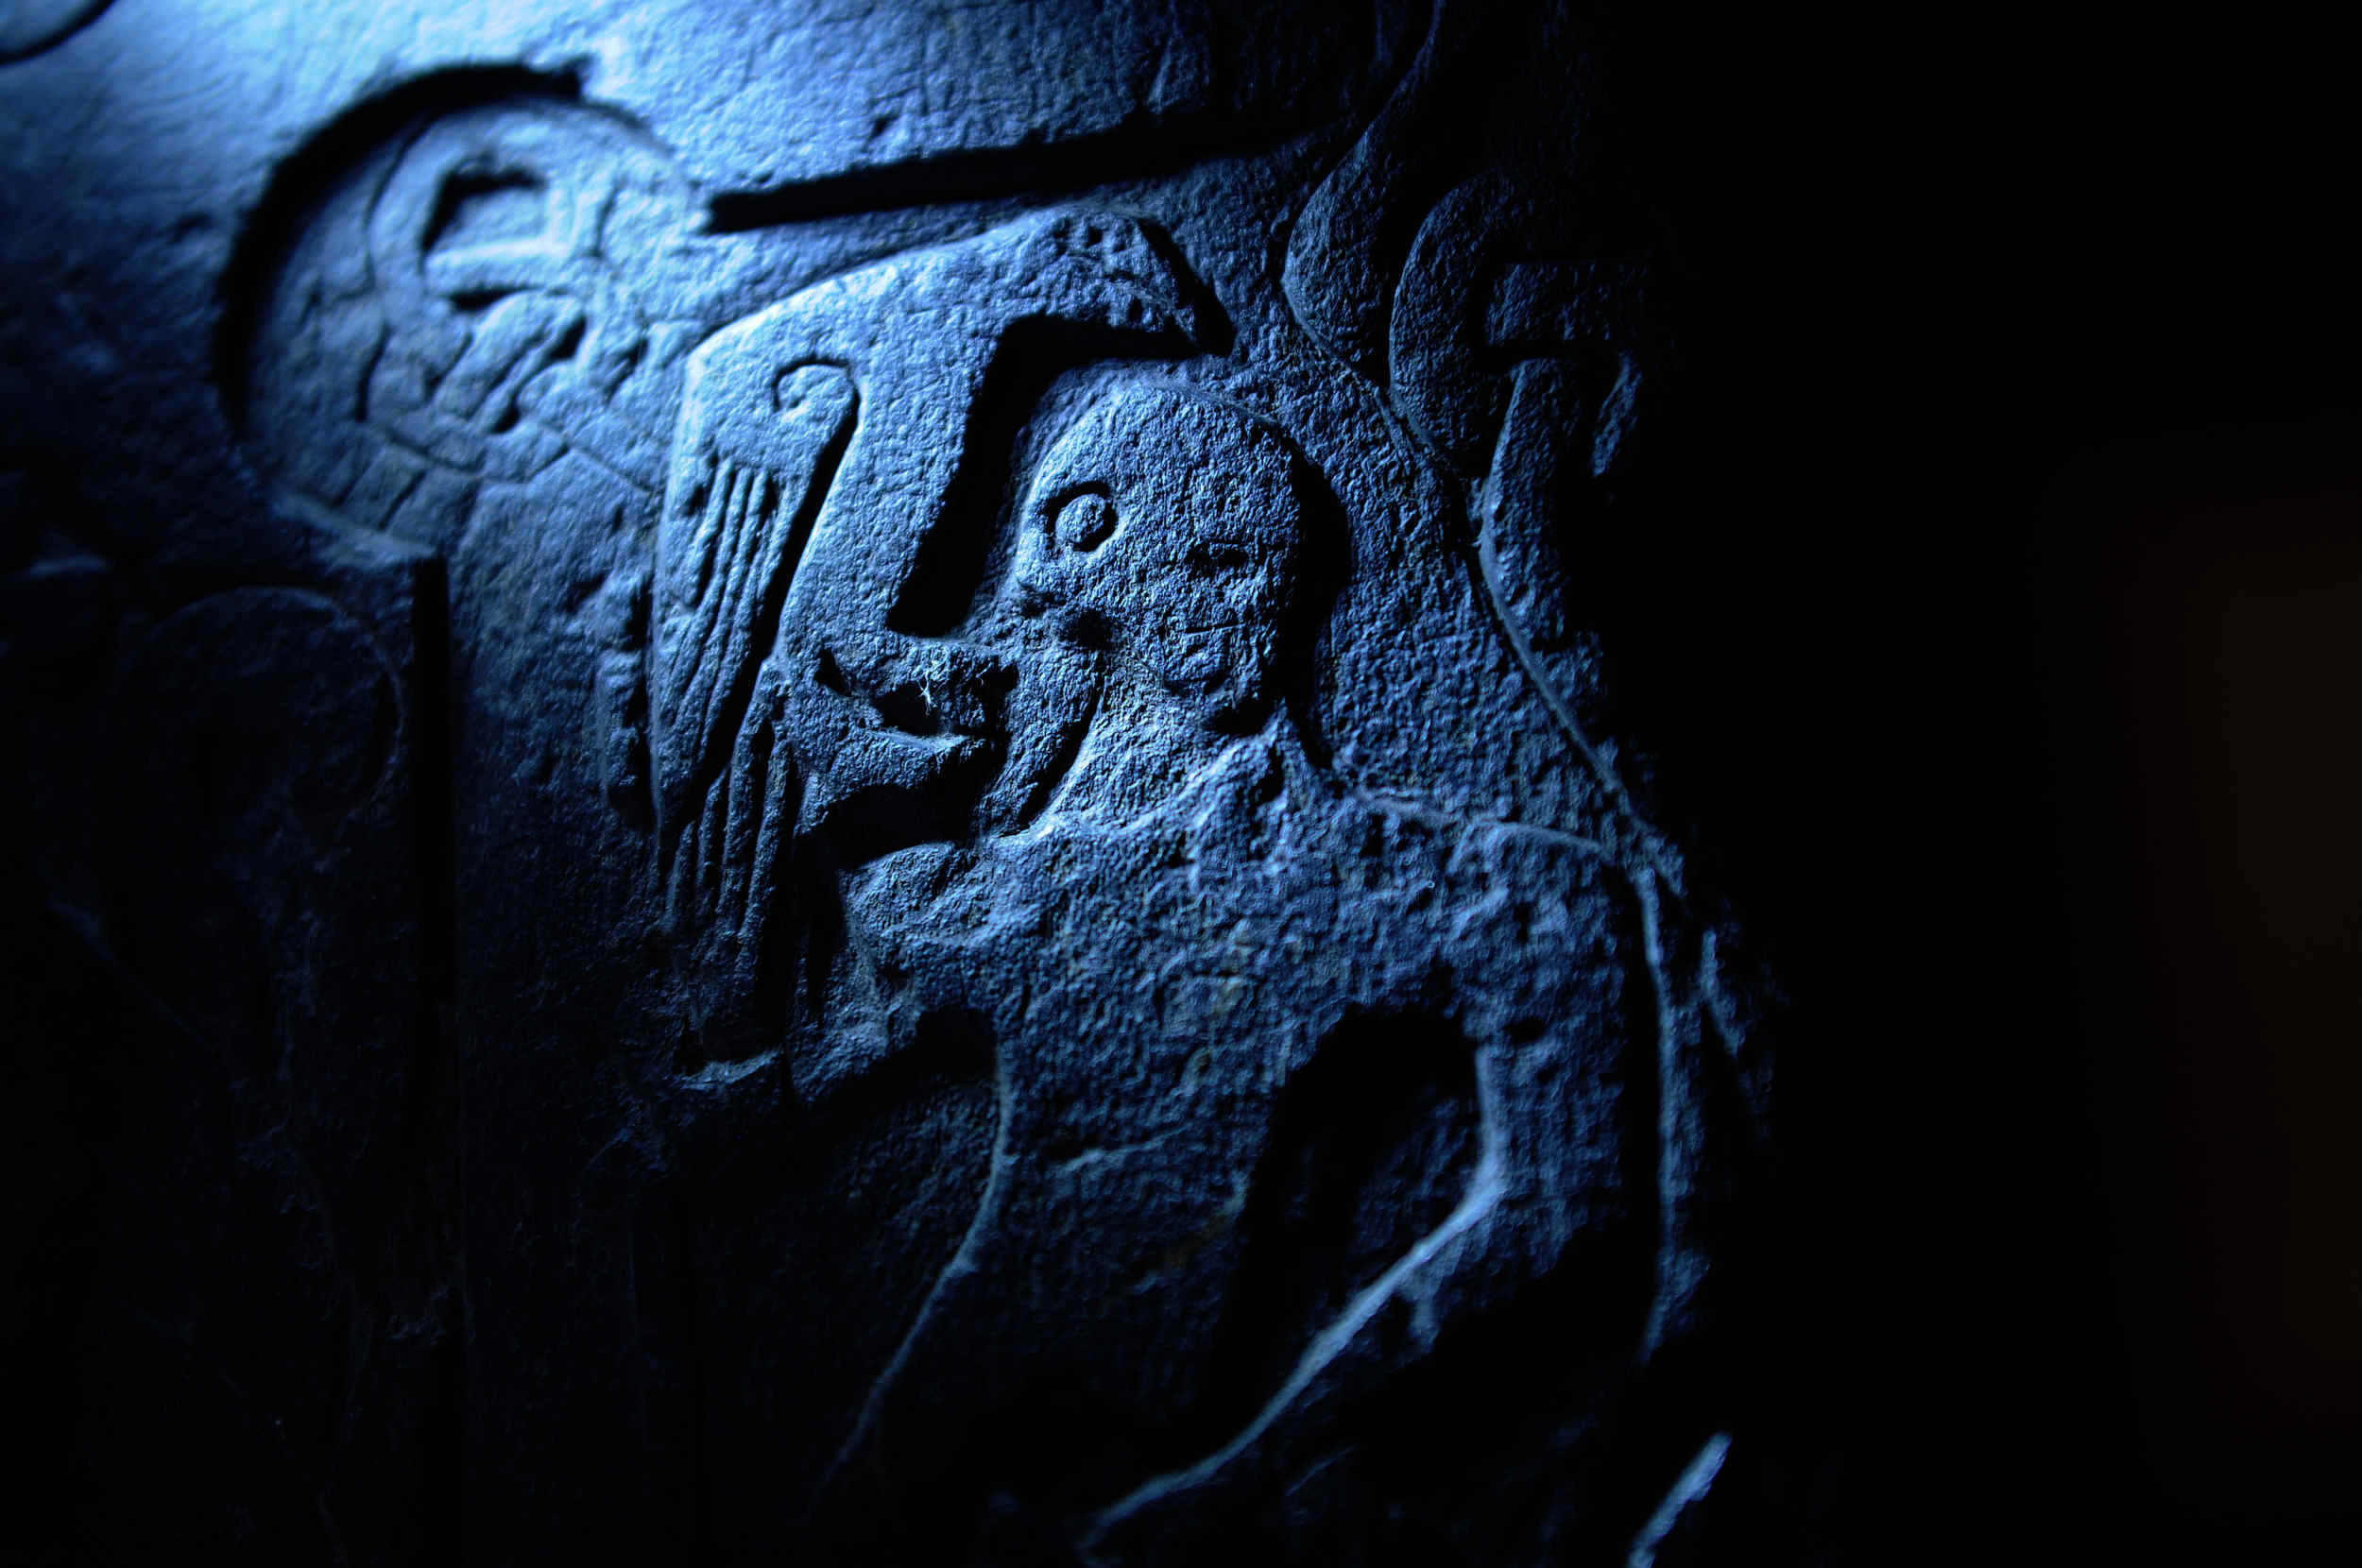 Ragnarok, as depicted on Thorwald's Cross, featuring Norse god Odin and his raven. The stone was carved around 940AD and the surviving fragment resides at Kirk Andreas church.